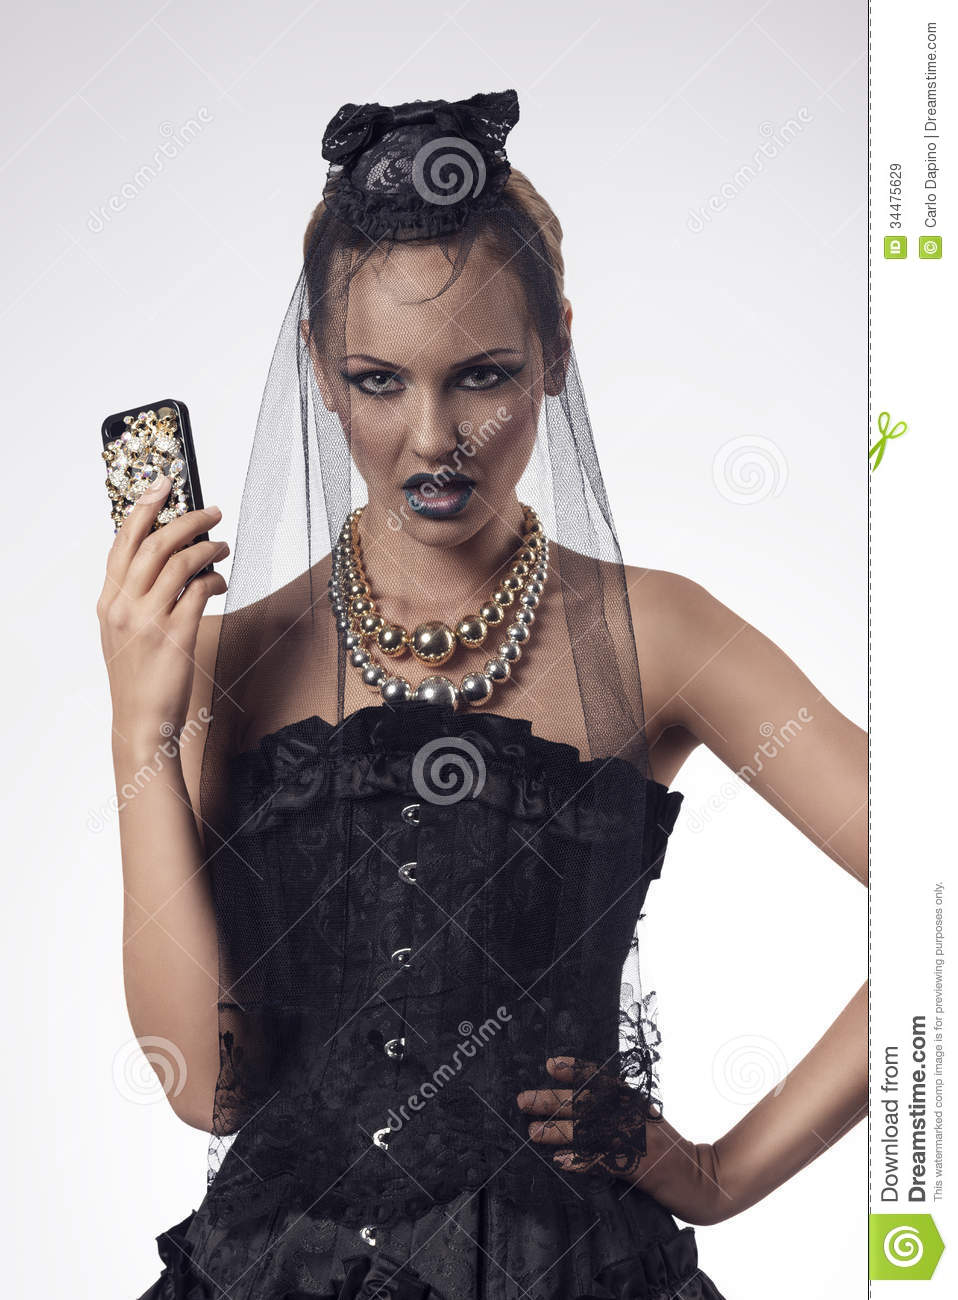 Halloween Woman With Smartphone Royalty Free Stock Images